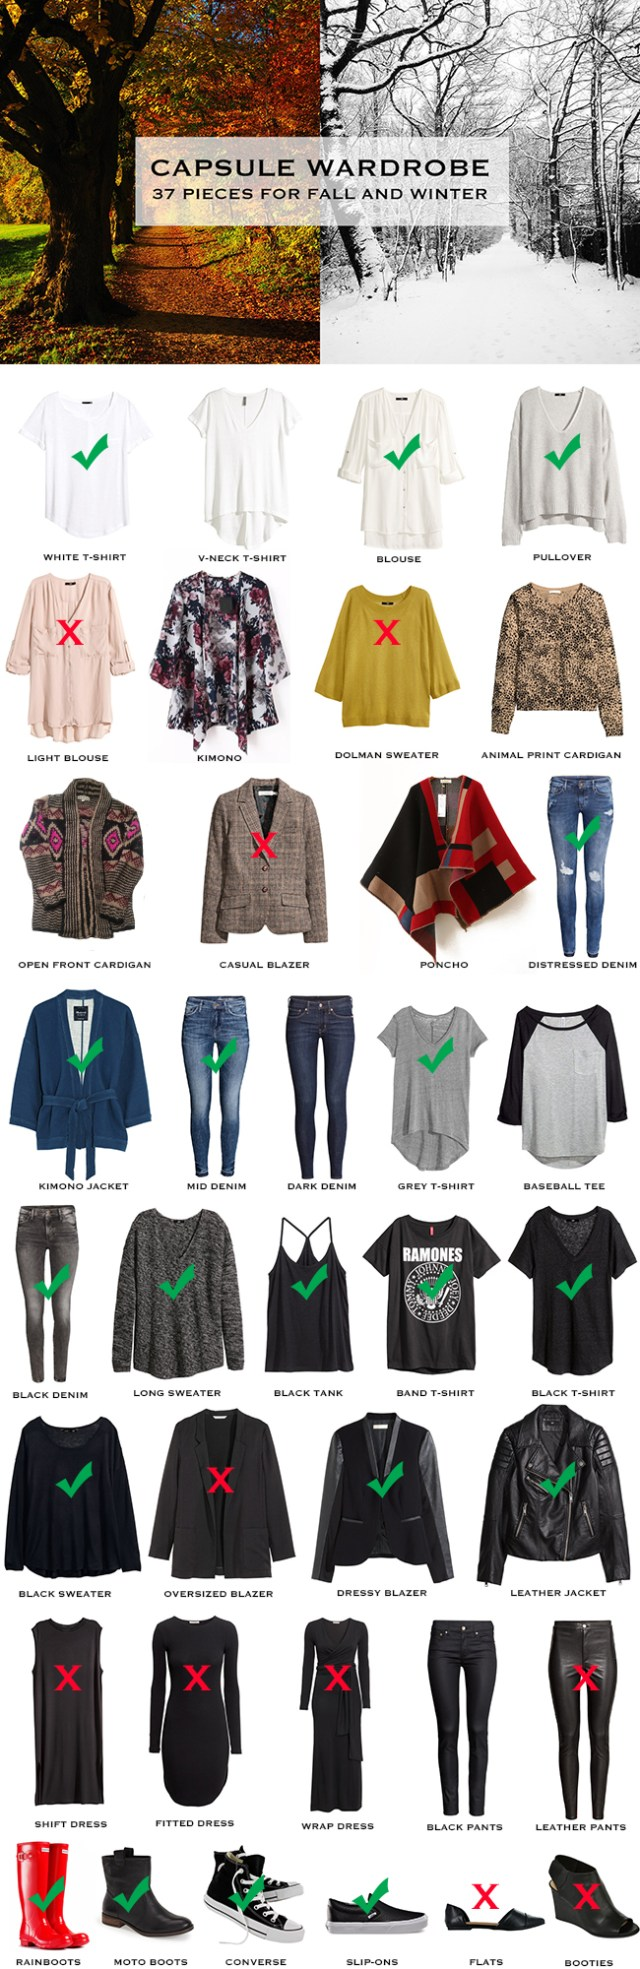 Fall Winter Capsule Wardrobe Mid Season Review